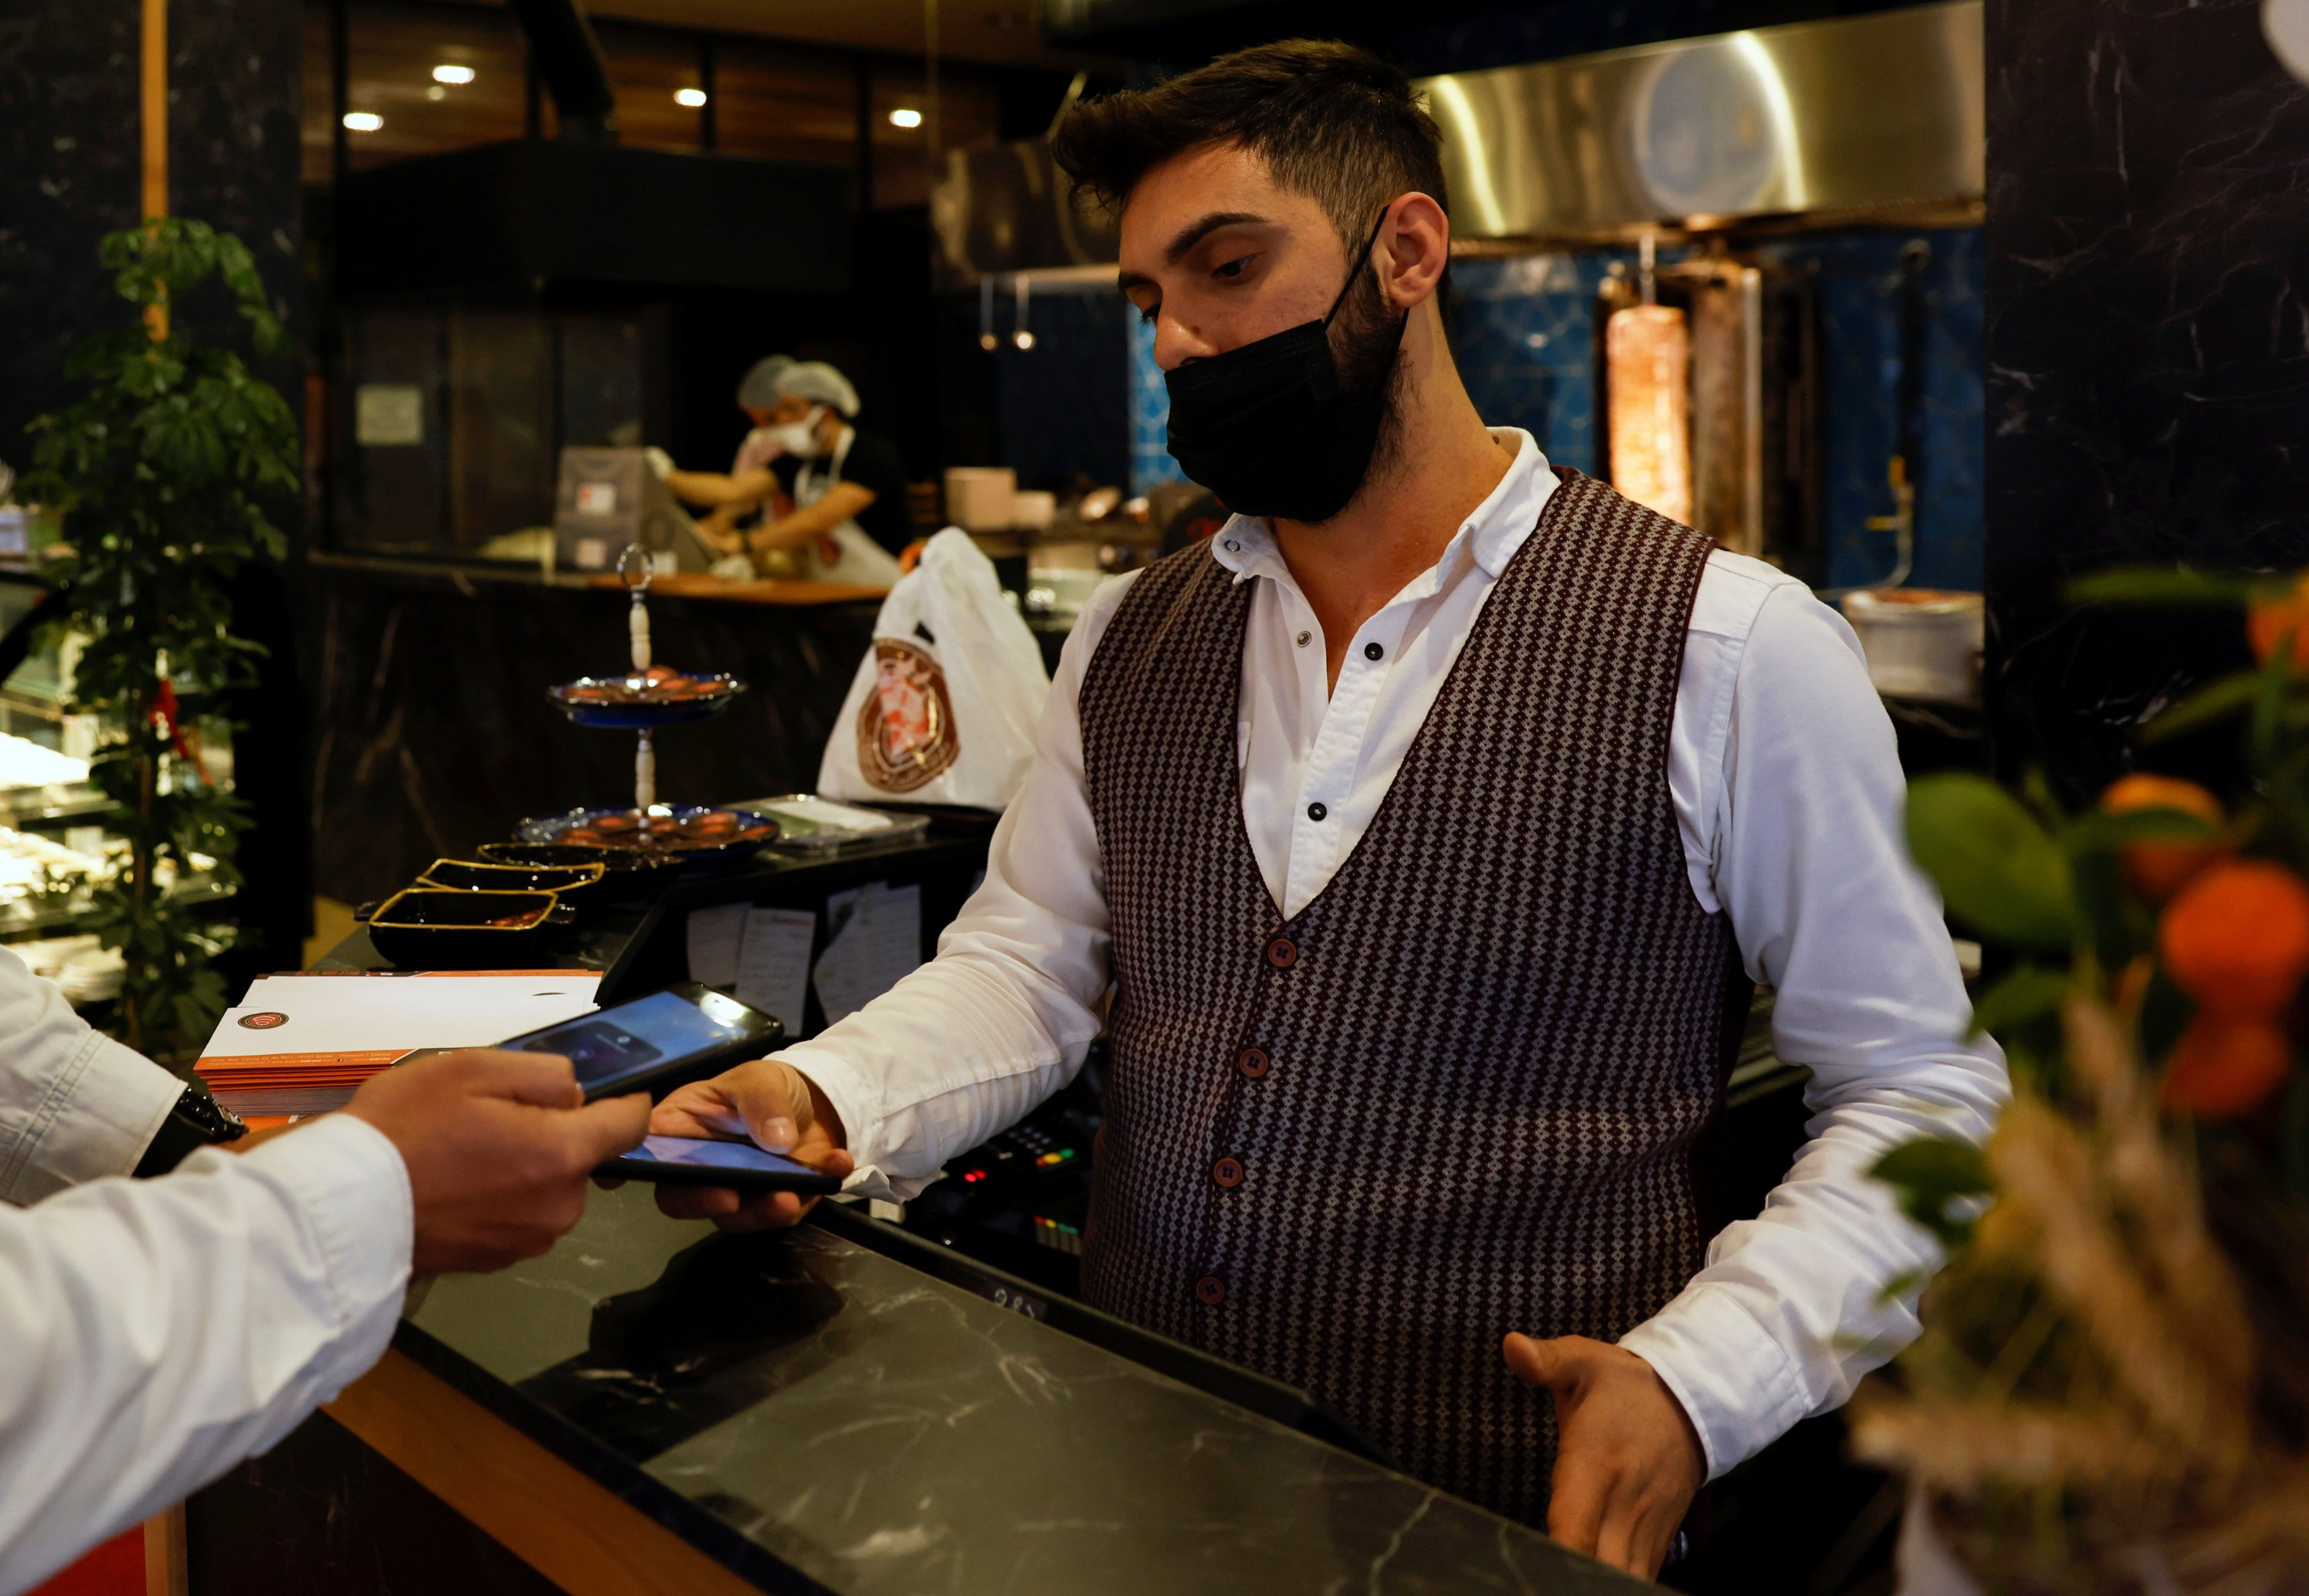 A cashier takes payment via cryptocurrency app at a kebab restaurant that accepts Bitcoin and Dexchain in Istanbul, Turkey, April 27, 2021. (Reuters Photo)